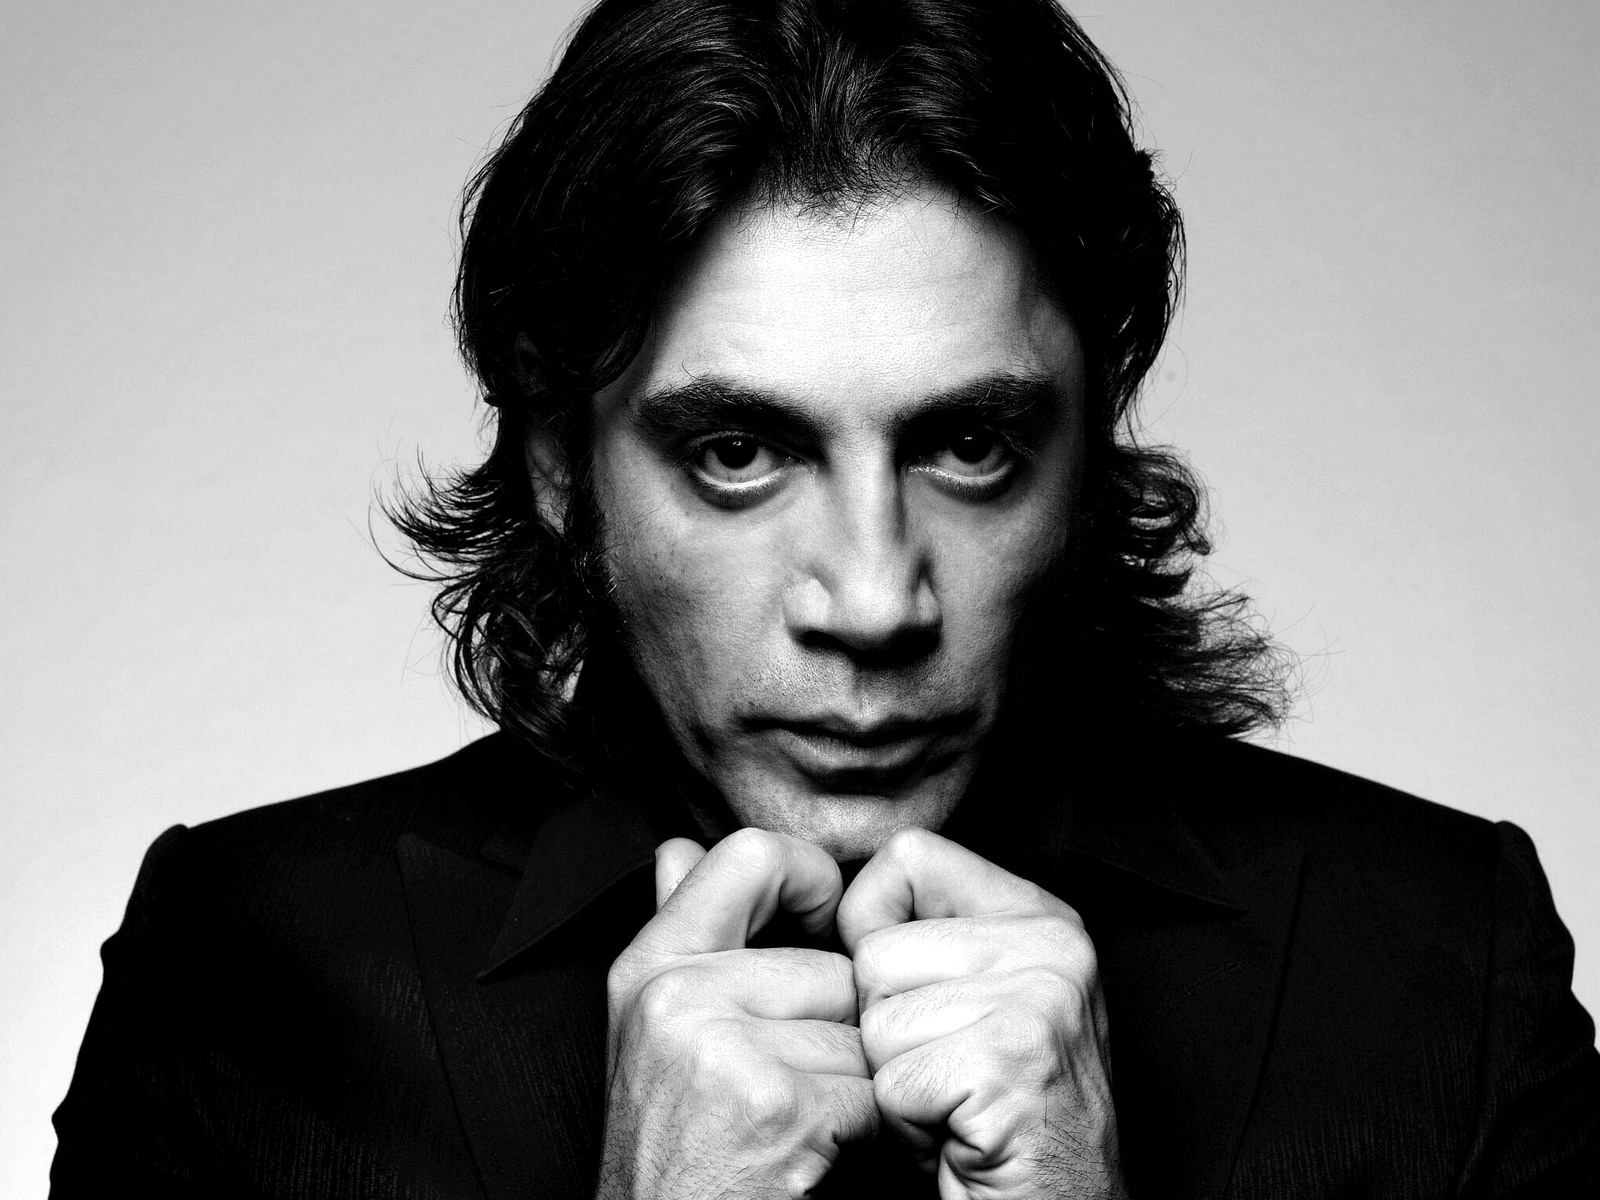 Wallpaper HD de Javier Bardem